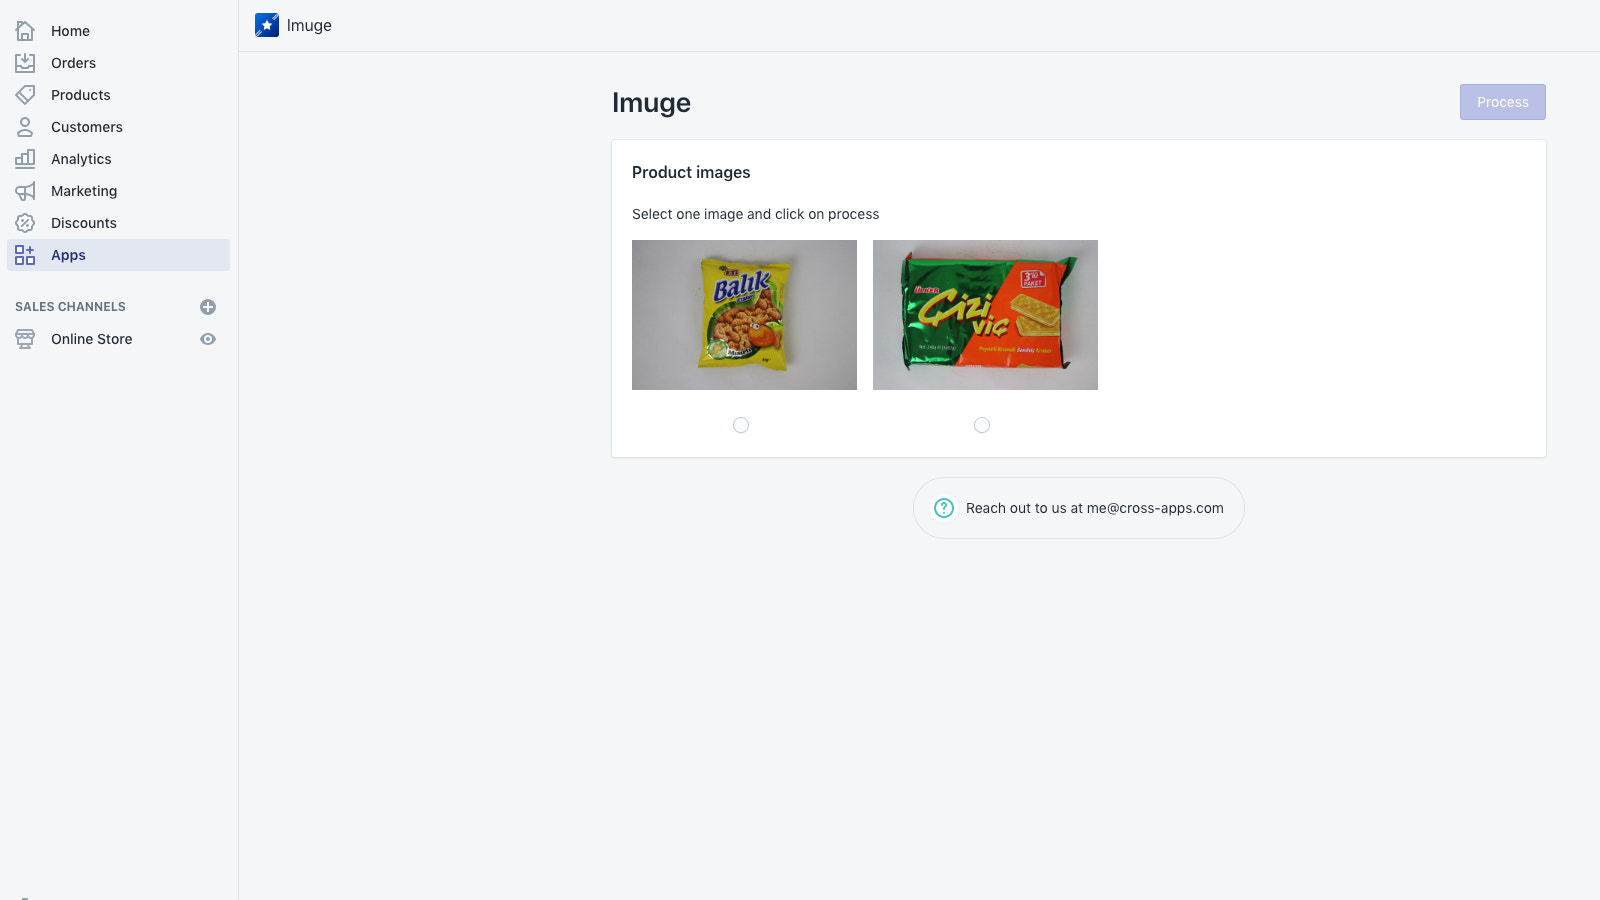 Easy to use user interface for selecting image